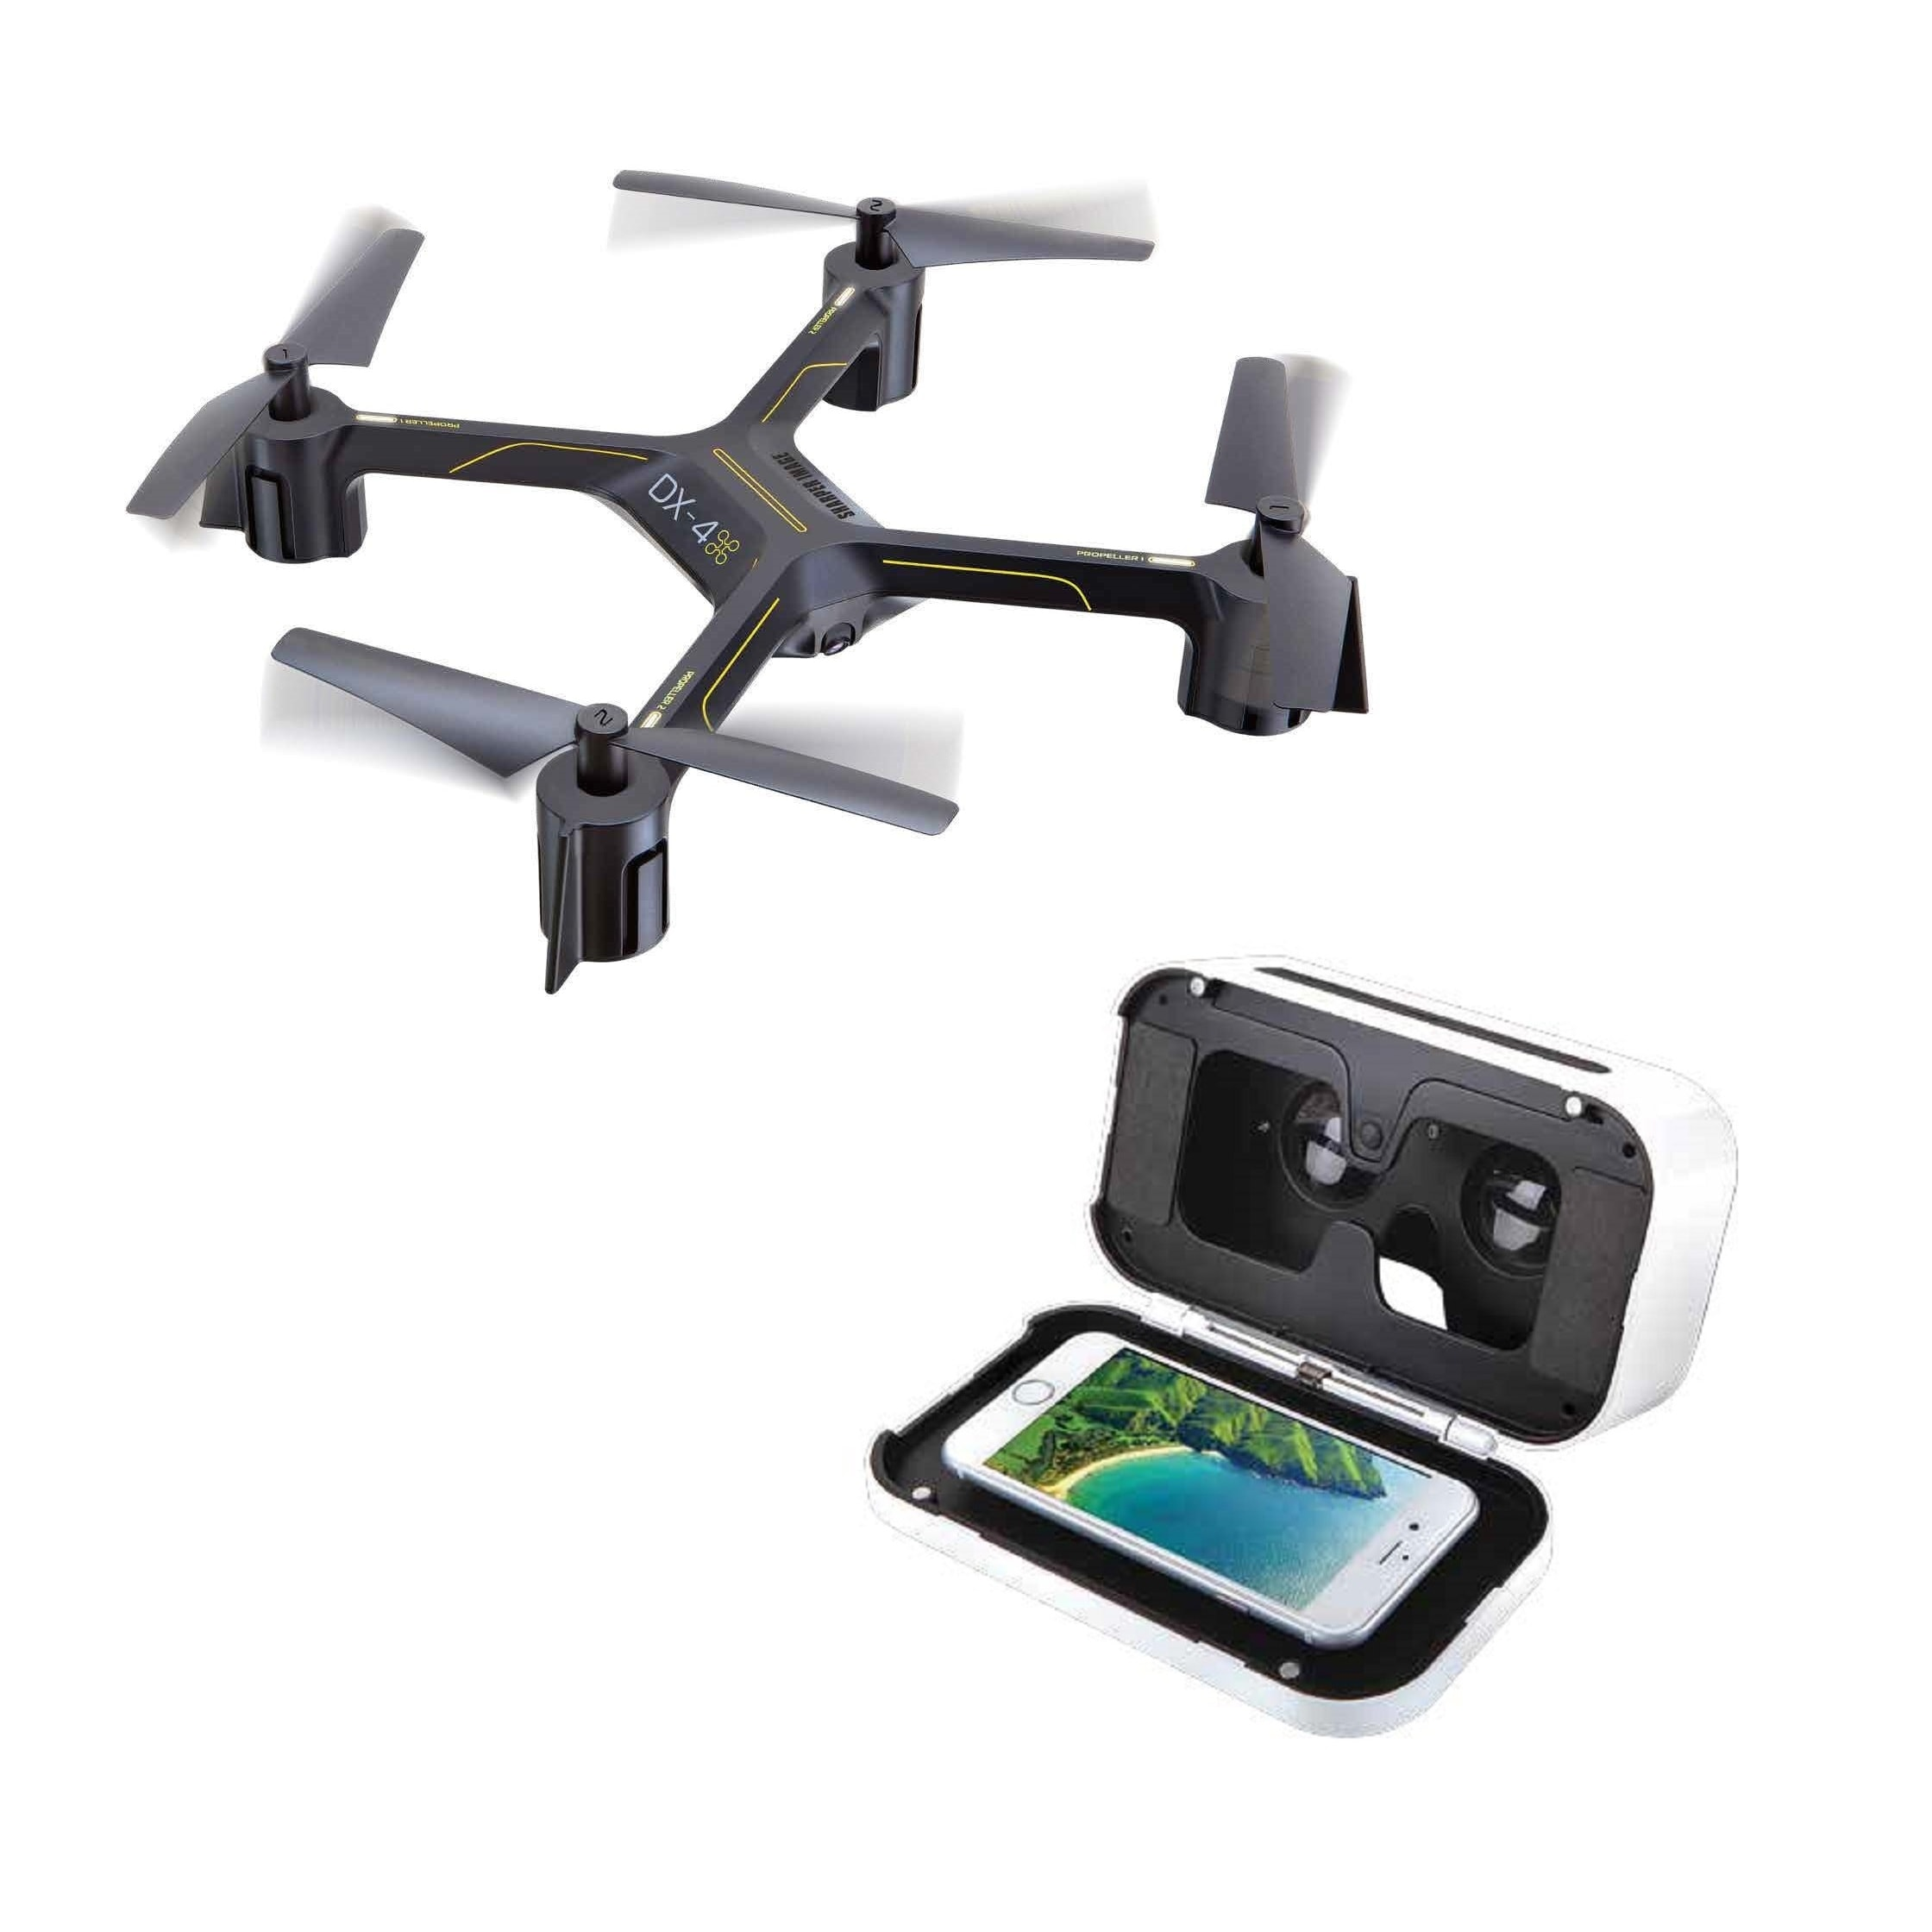 Shop Sharper Image Dx 4 Hd Video Fpv Streaming Drone On Sale